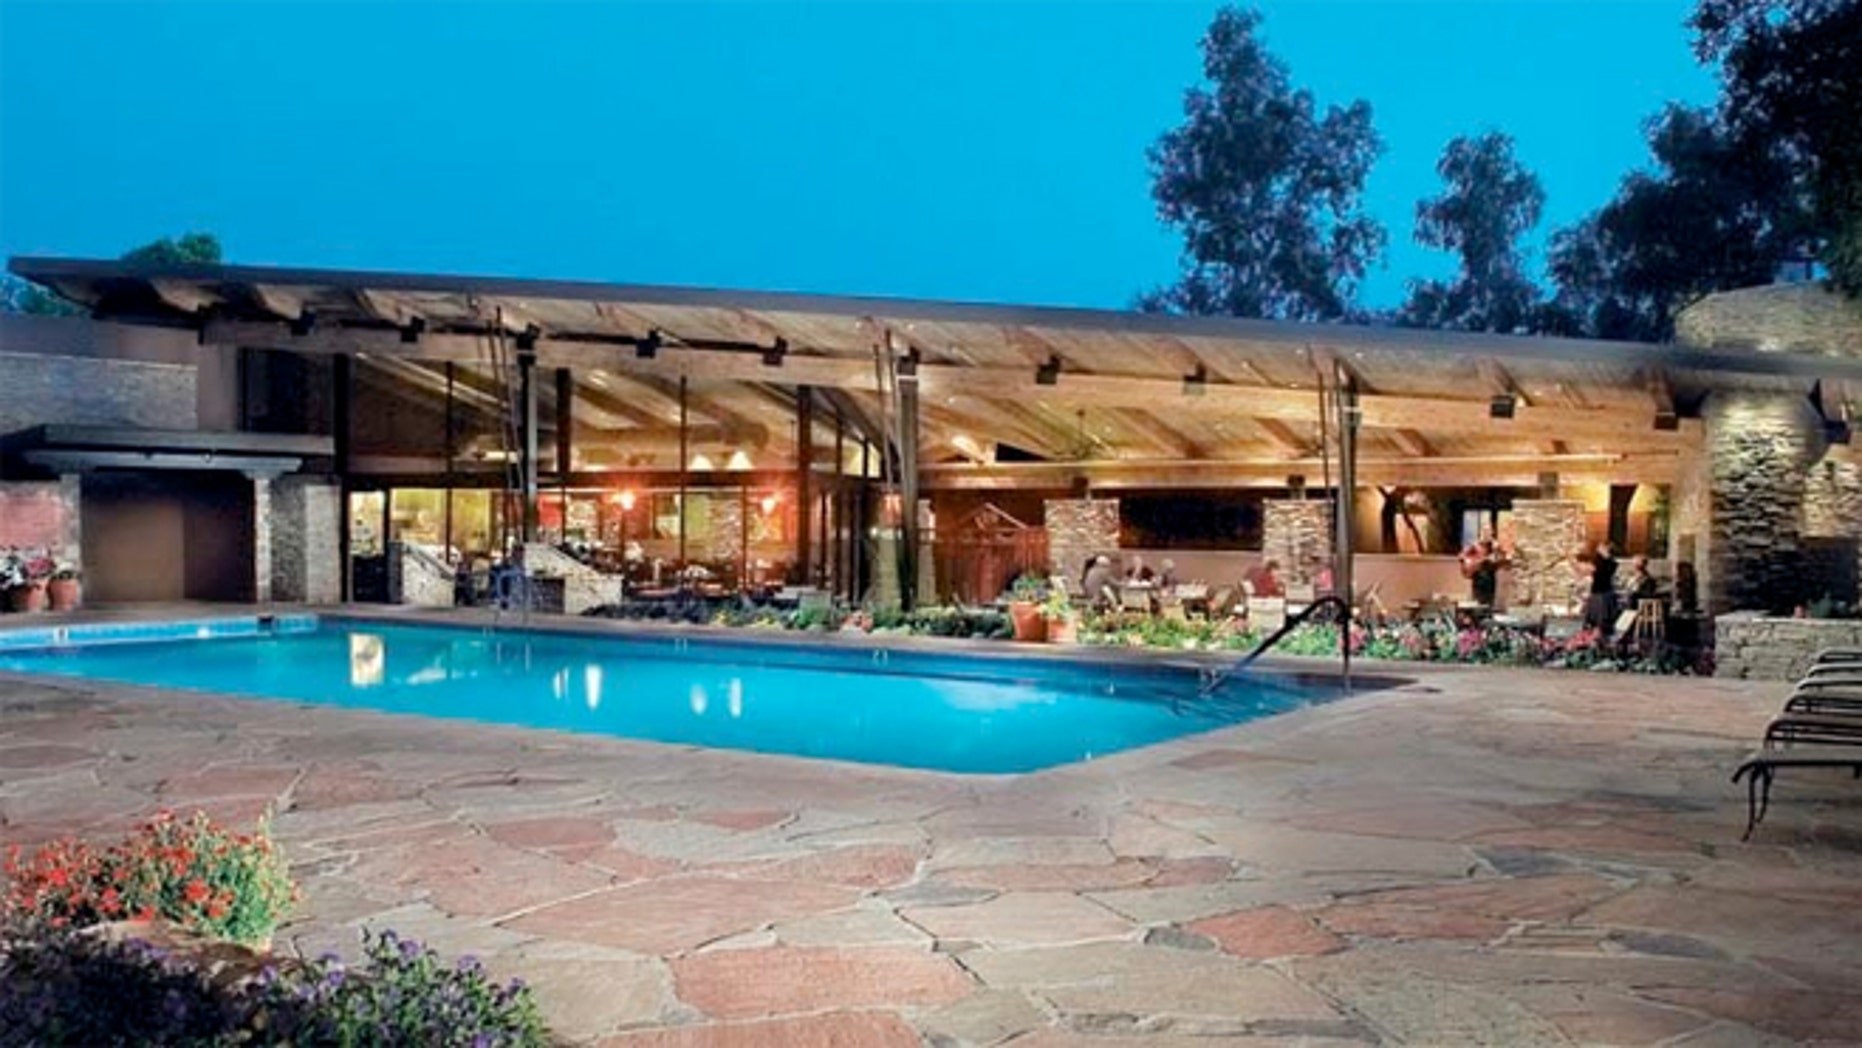 The one-story Southwestern-style Canyon Ranch Tucson,  Arizona offers thoughtful amenities and great therapies.